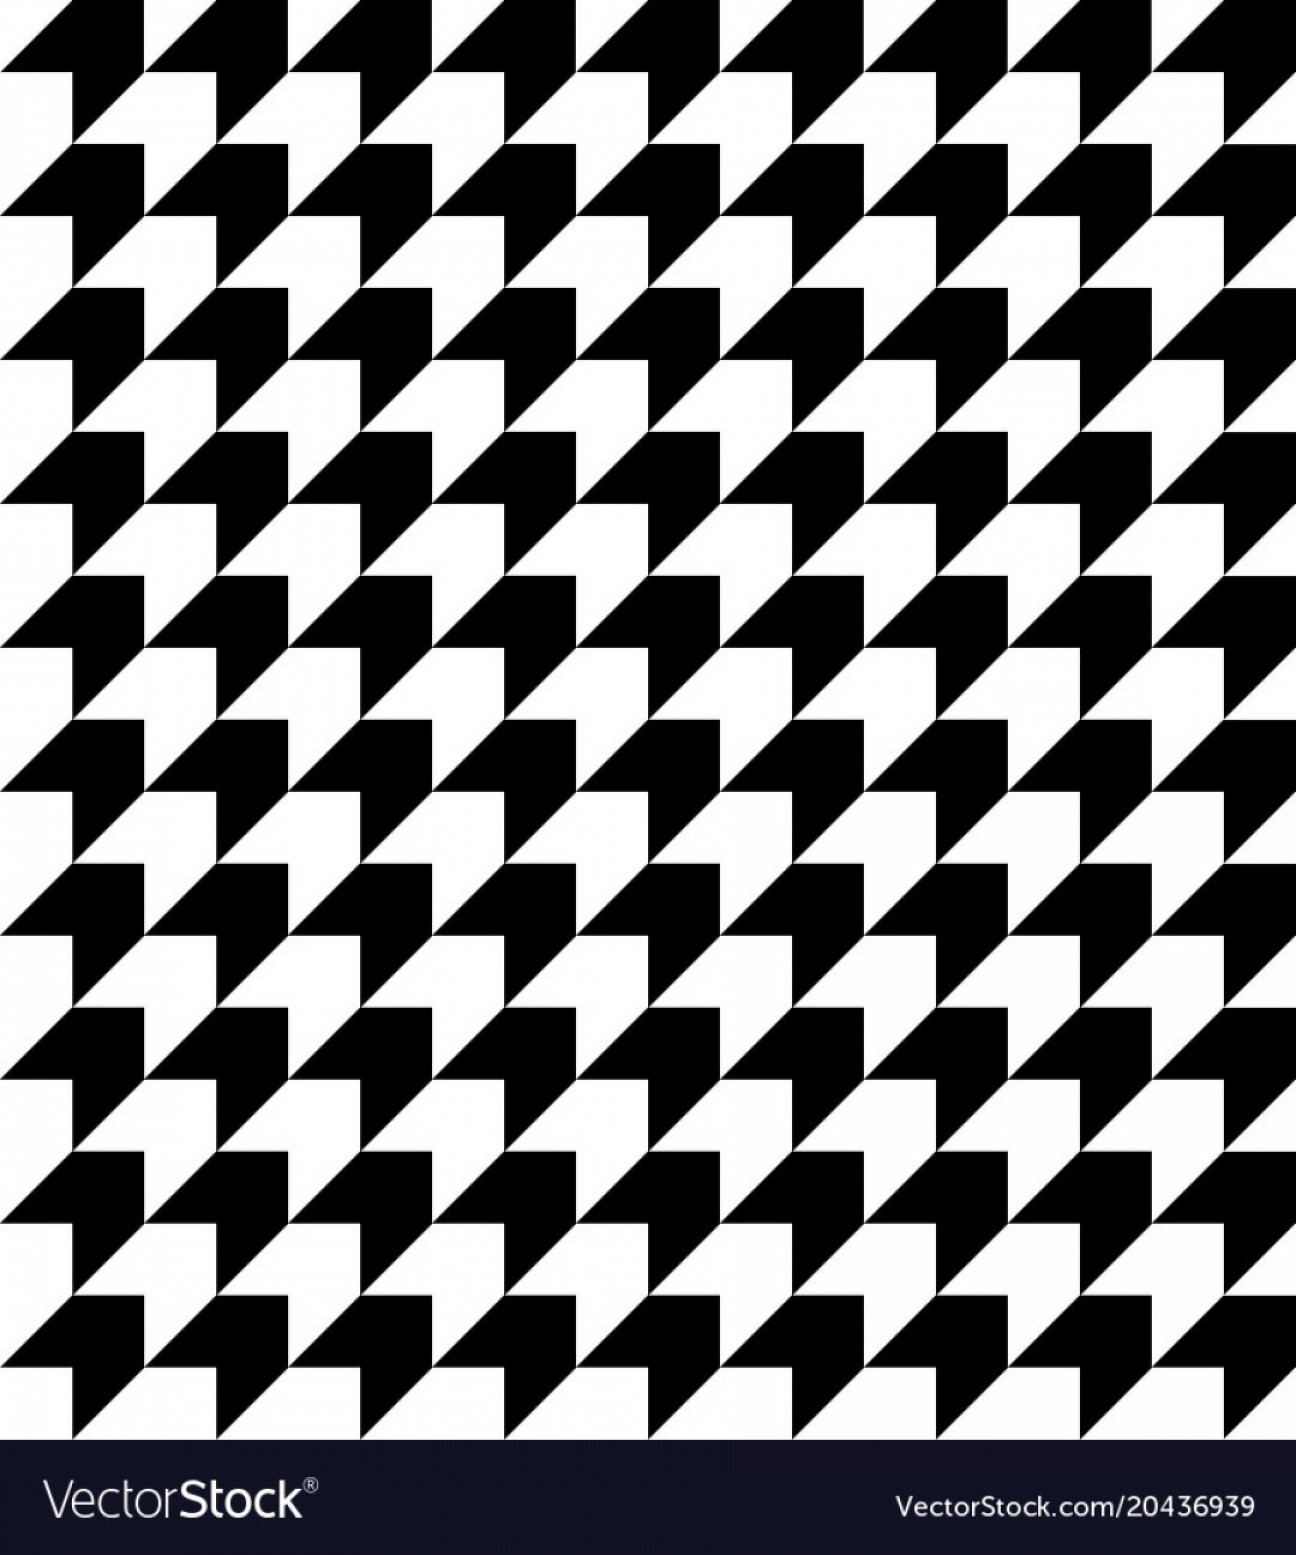 Houndstooth Vector: Black And White Houndstooth Pattern Vector